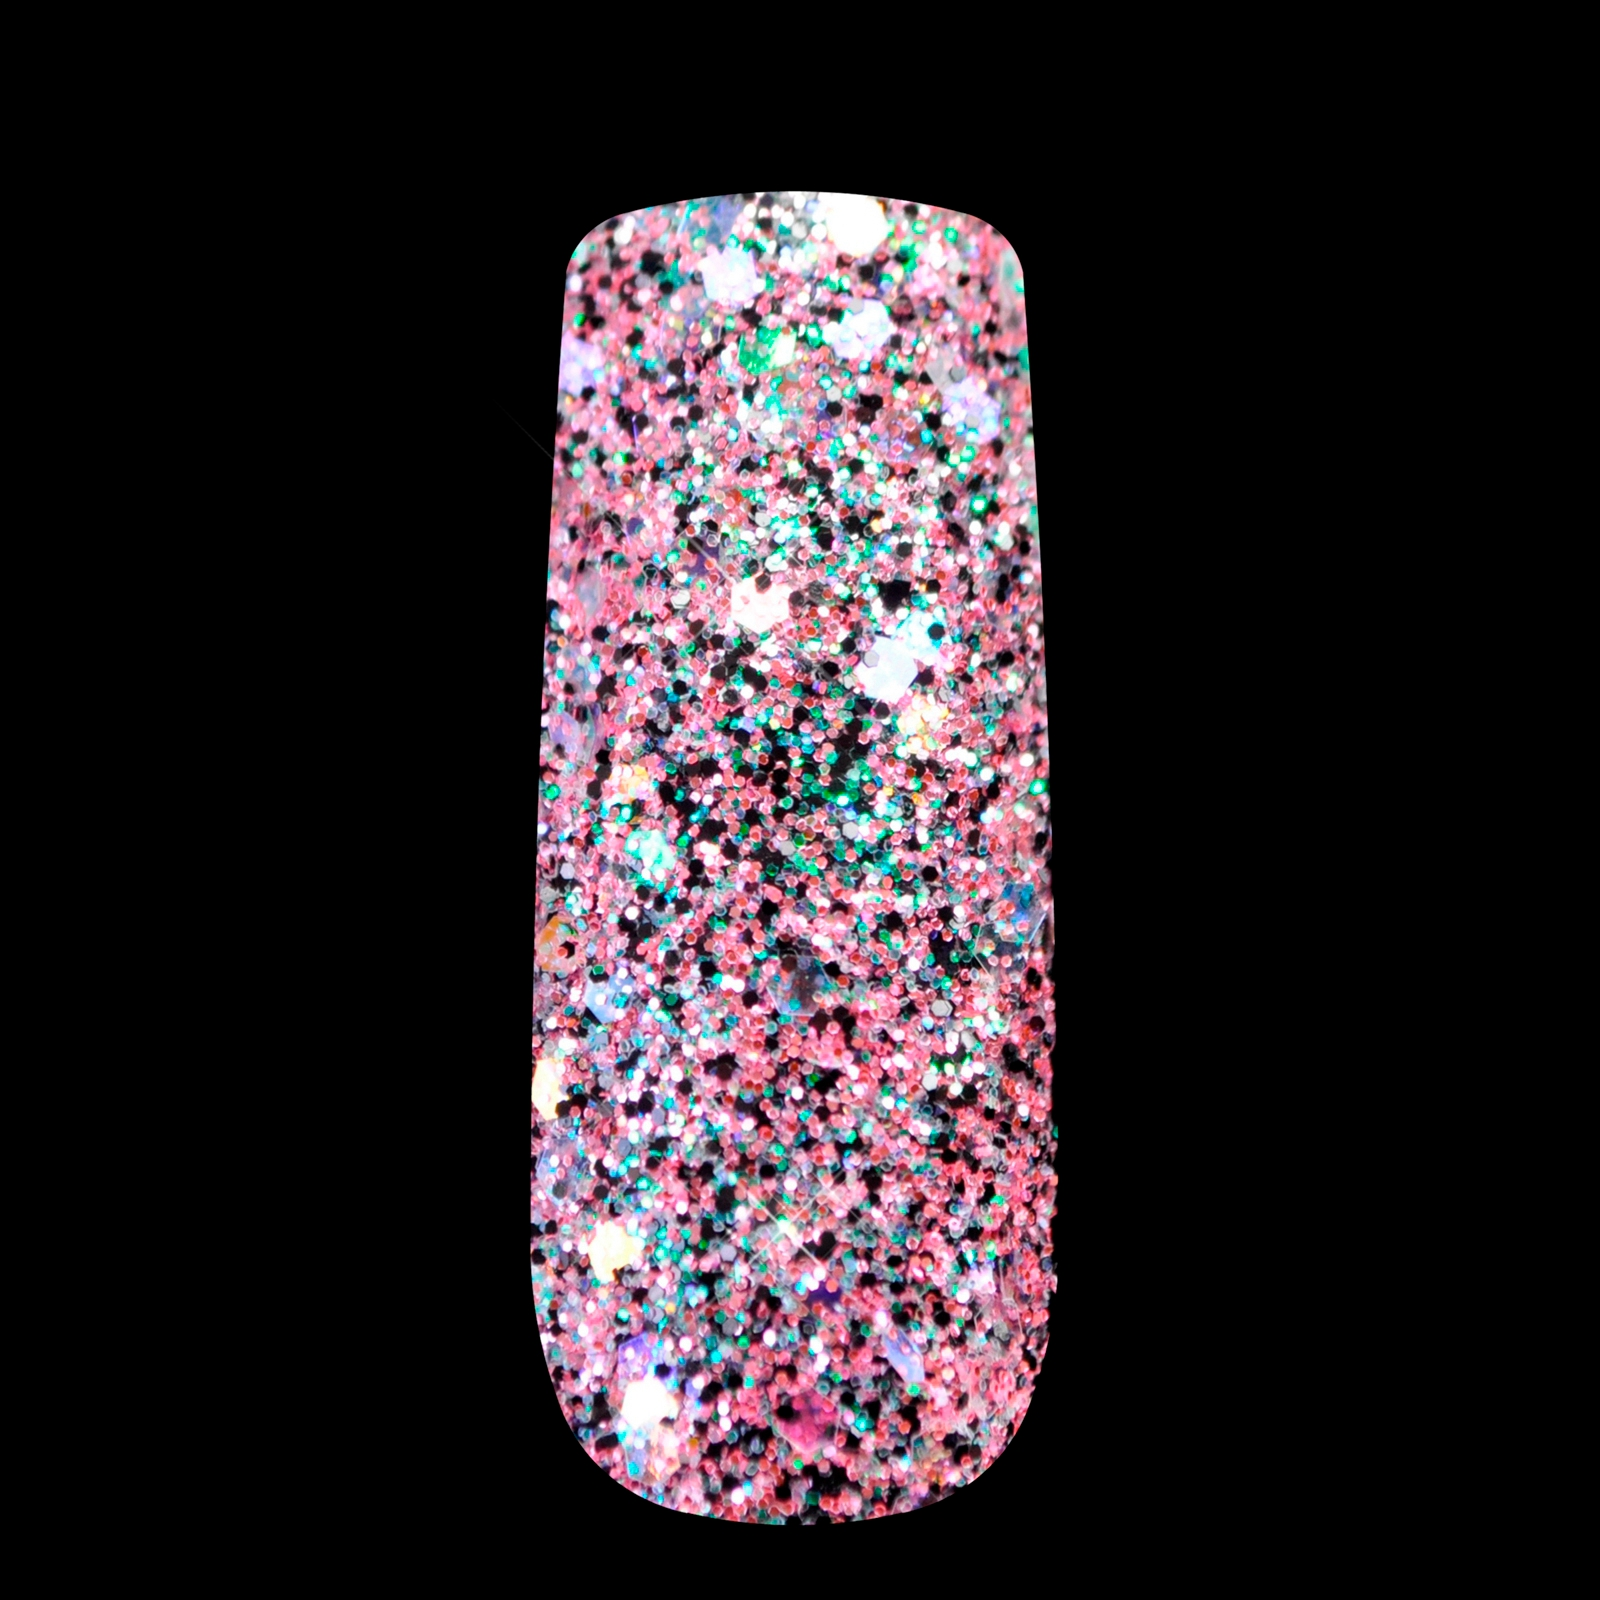 Pink Black Glitter Uv Nail Art Mix Size Acrylic Powder Pentagon Sequins Sheet Supplies Decoration 274 In From Beauty Health On